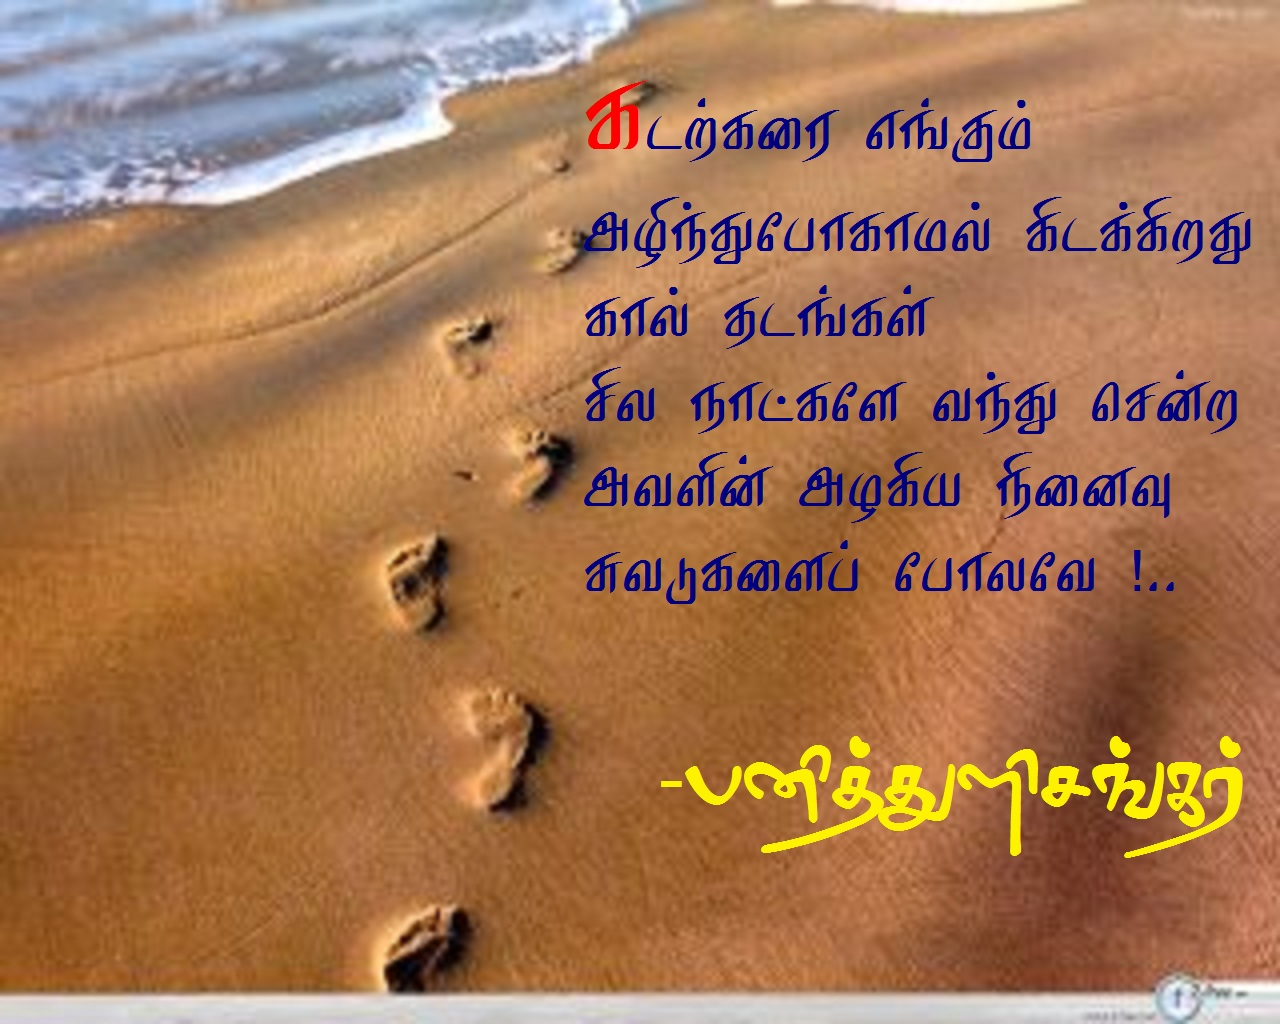 Tamil Love Kavithai SMS. Tamil Images Love Sms. View Original ...